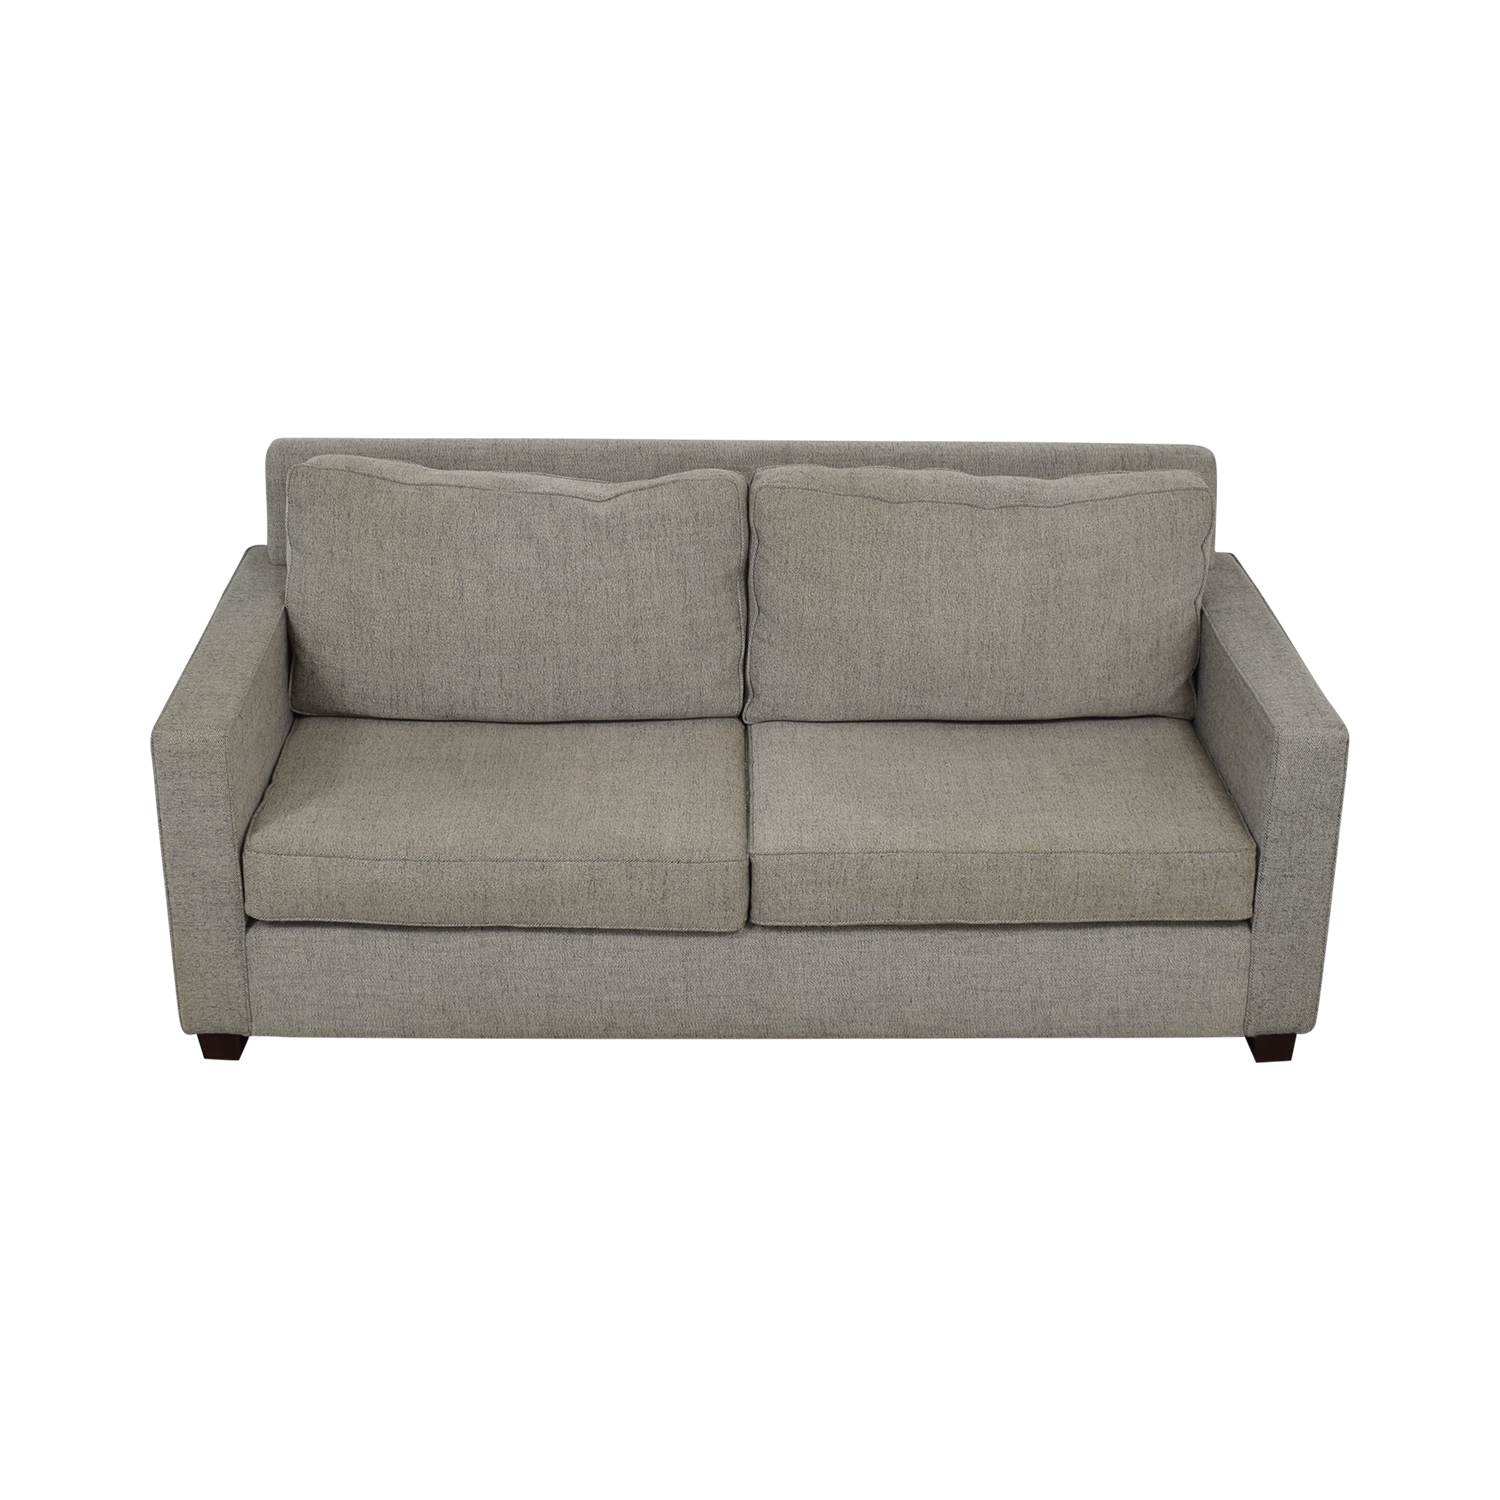 West Elm West Elm Henry Gray Two-Cushion Sofa